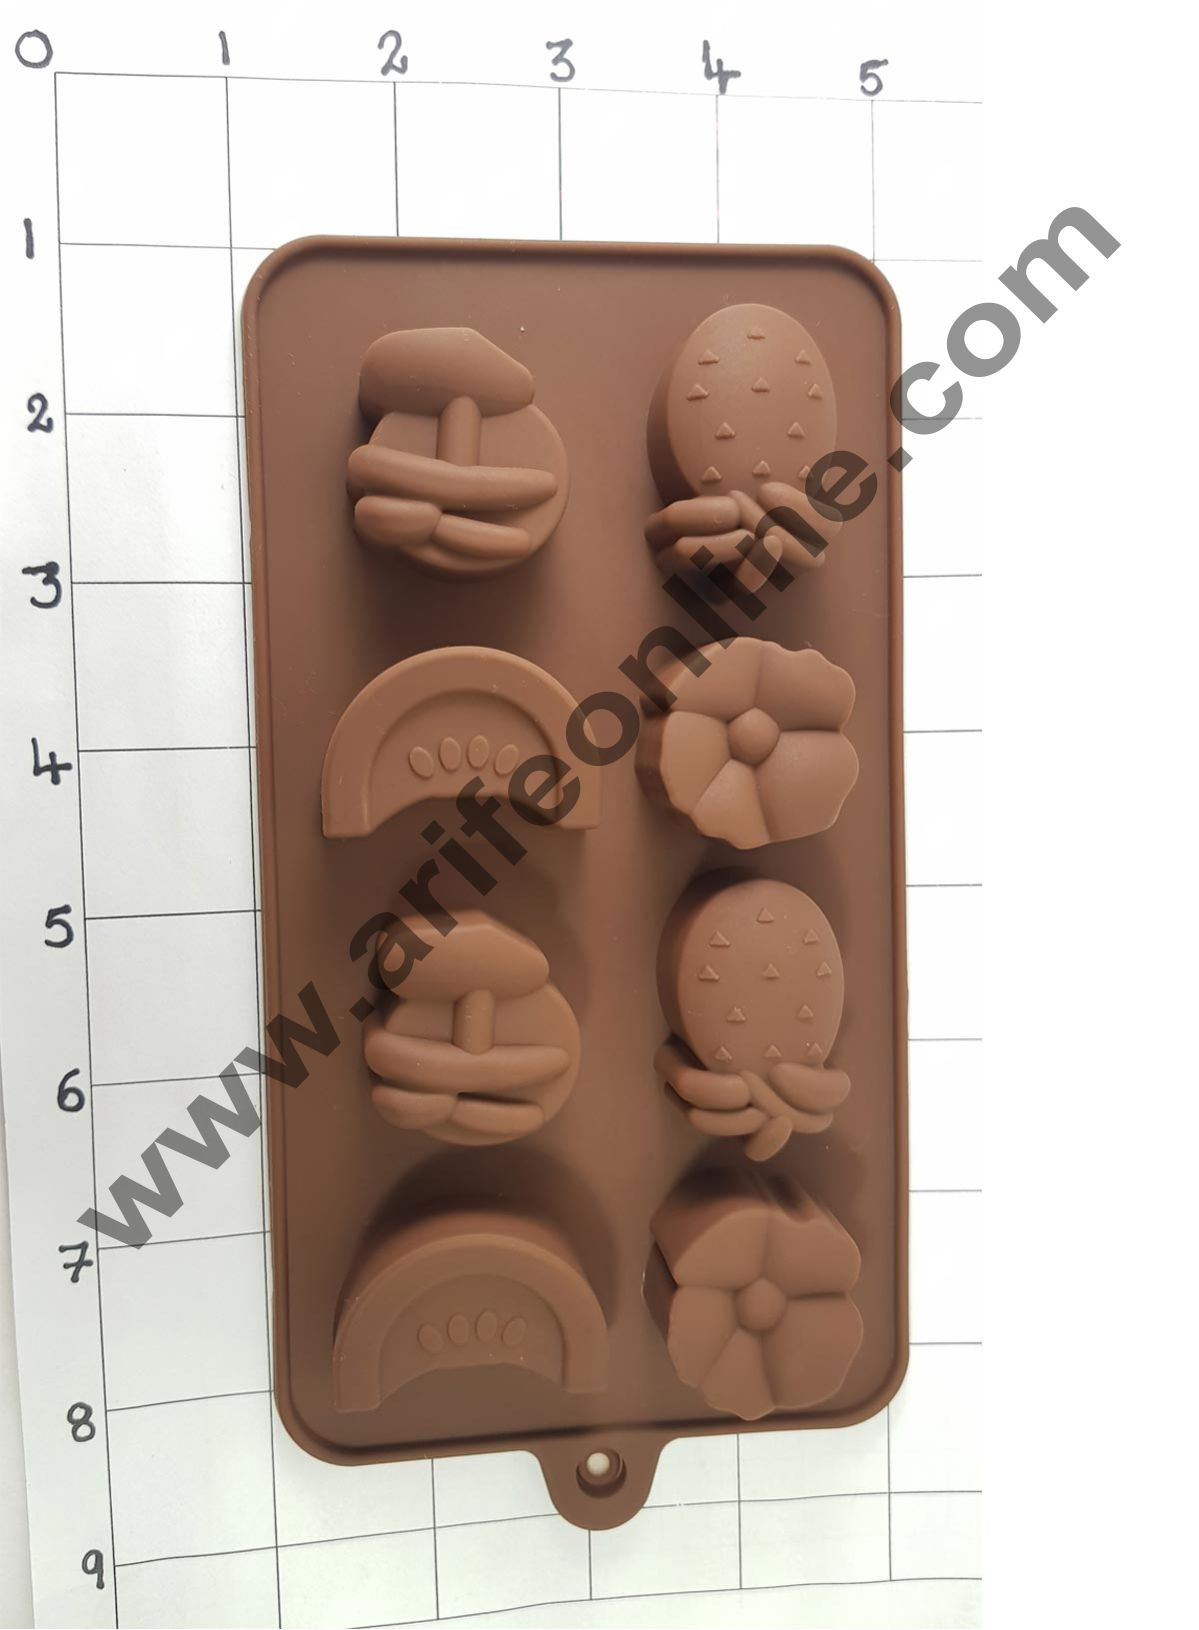 Cake Decor 8 Cavity Silicon Fruits N Flower Shape Ice Mould Cupcake Moulds Muffin Mould Chocolate Mould